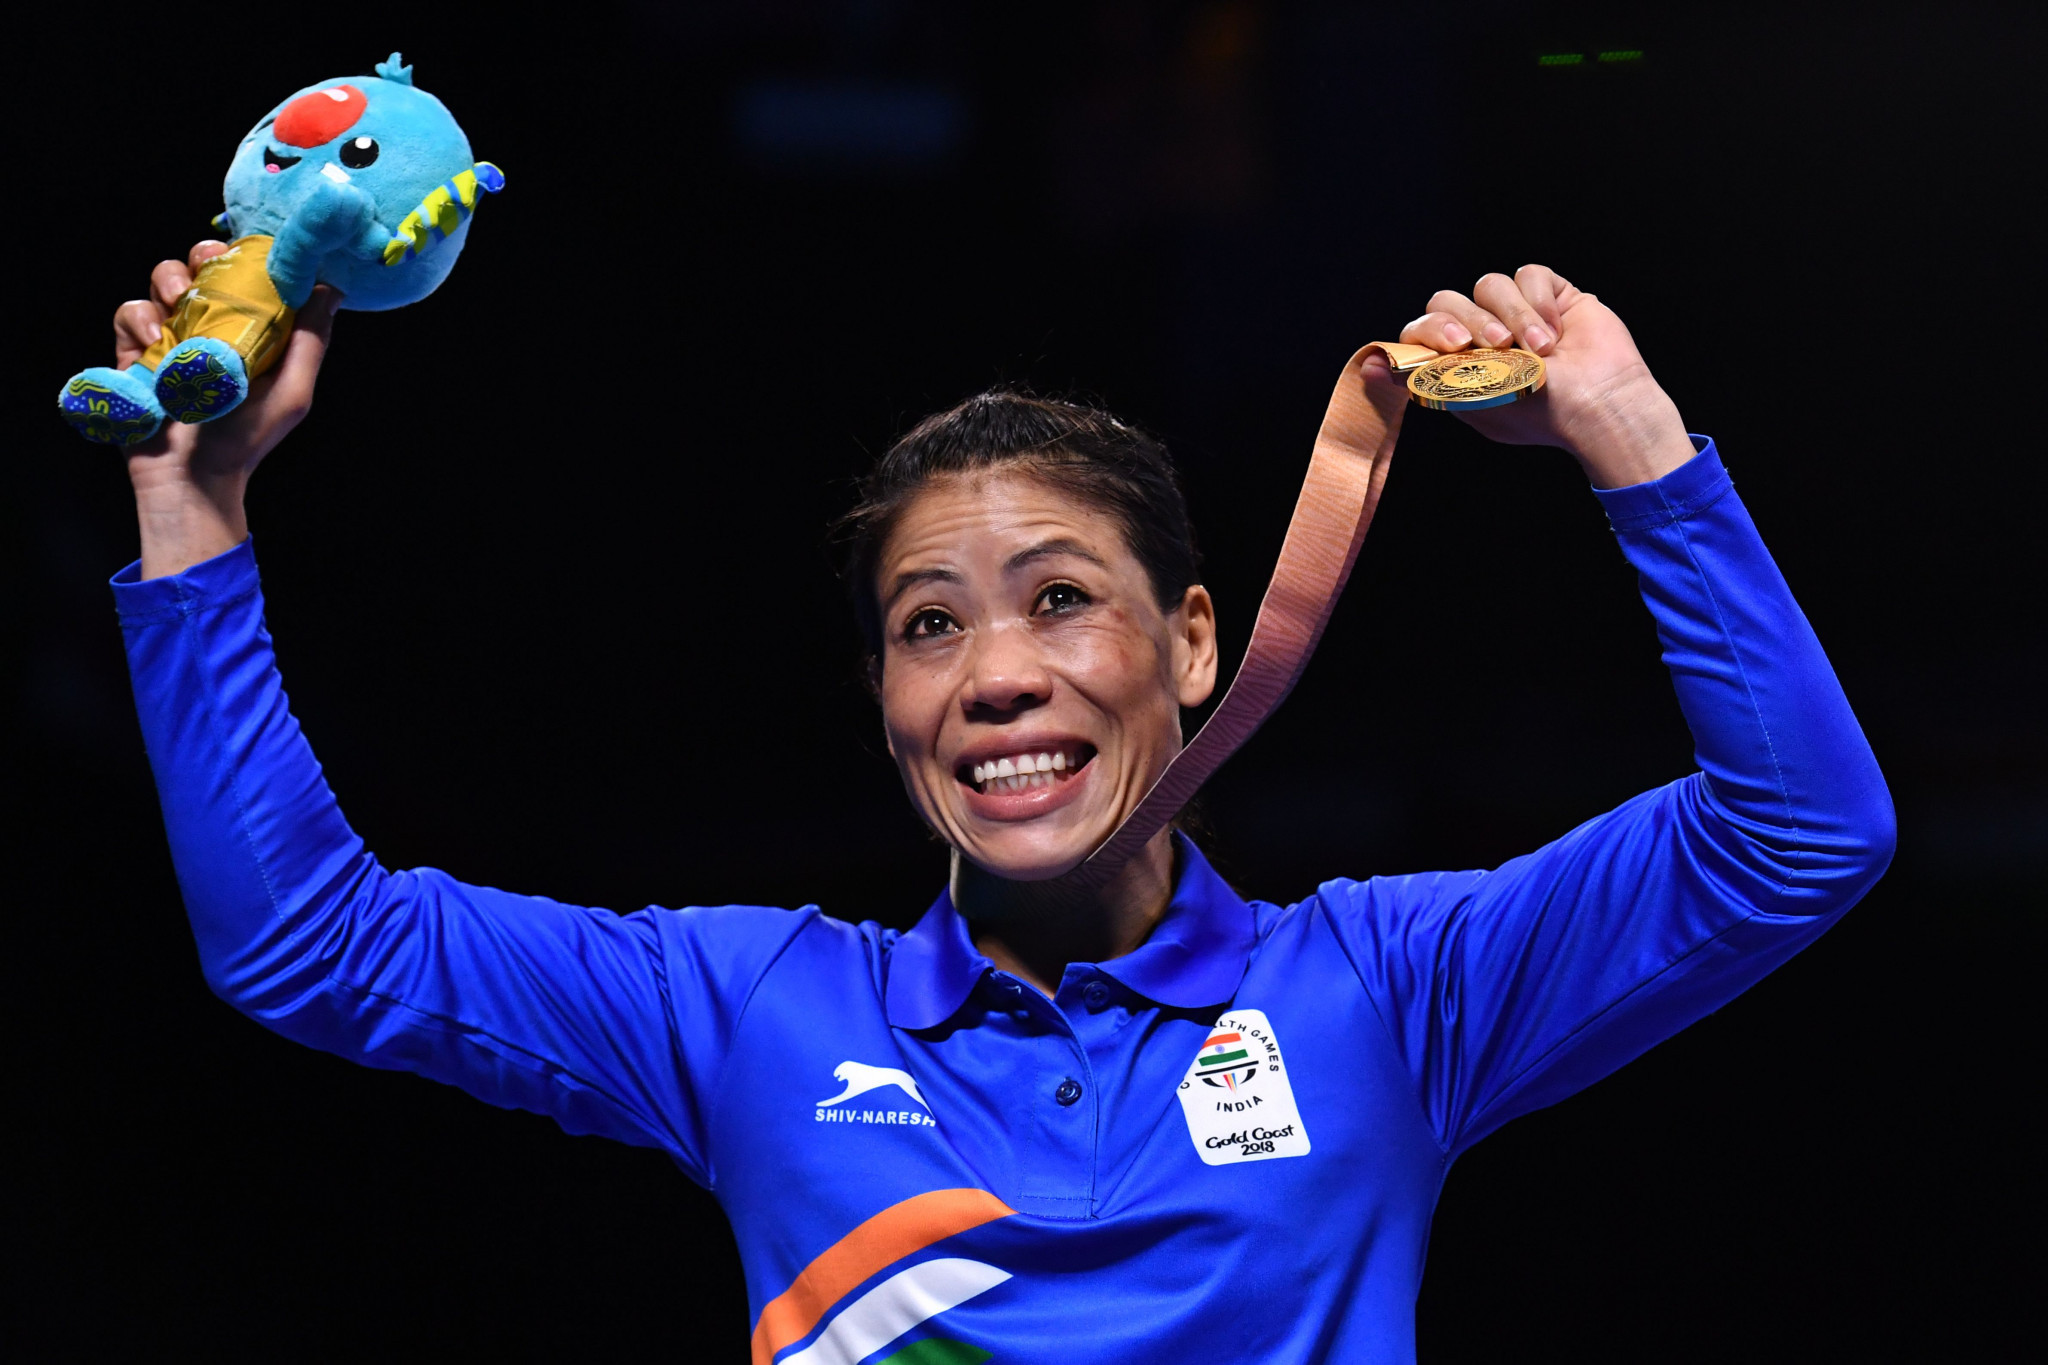 Five-time world champion MC Mary Kom became the first Indian female boxer to win a gold medal at a Commonwealth Games today ©Getty Images